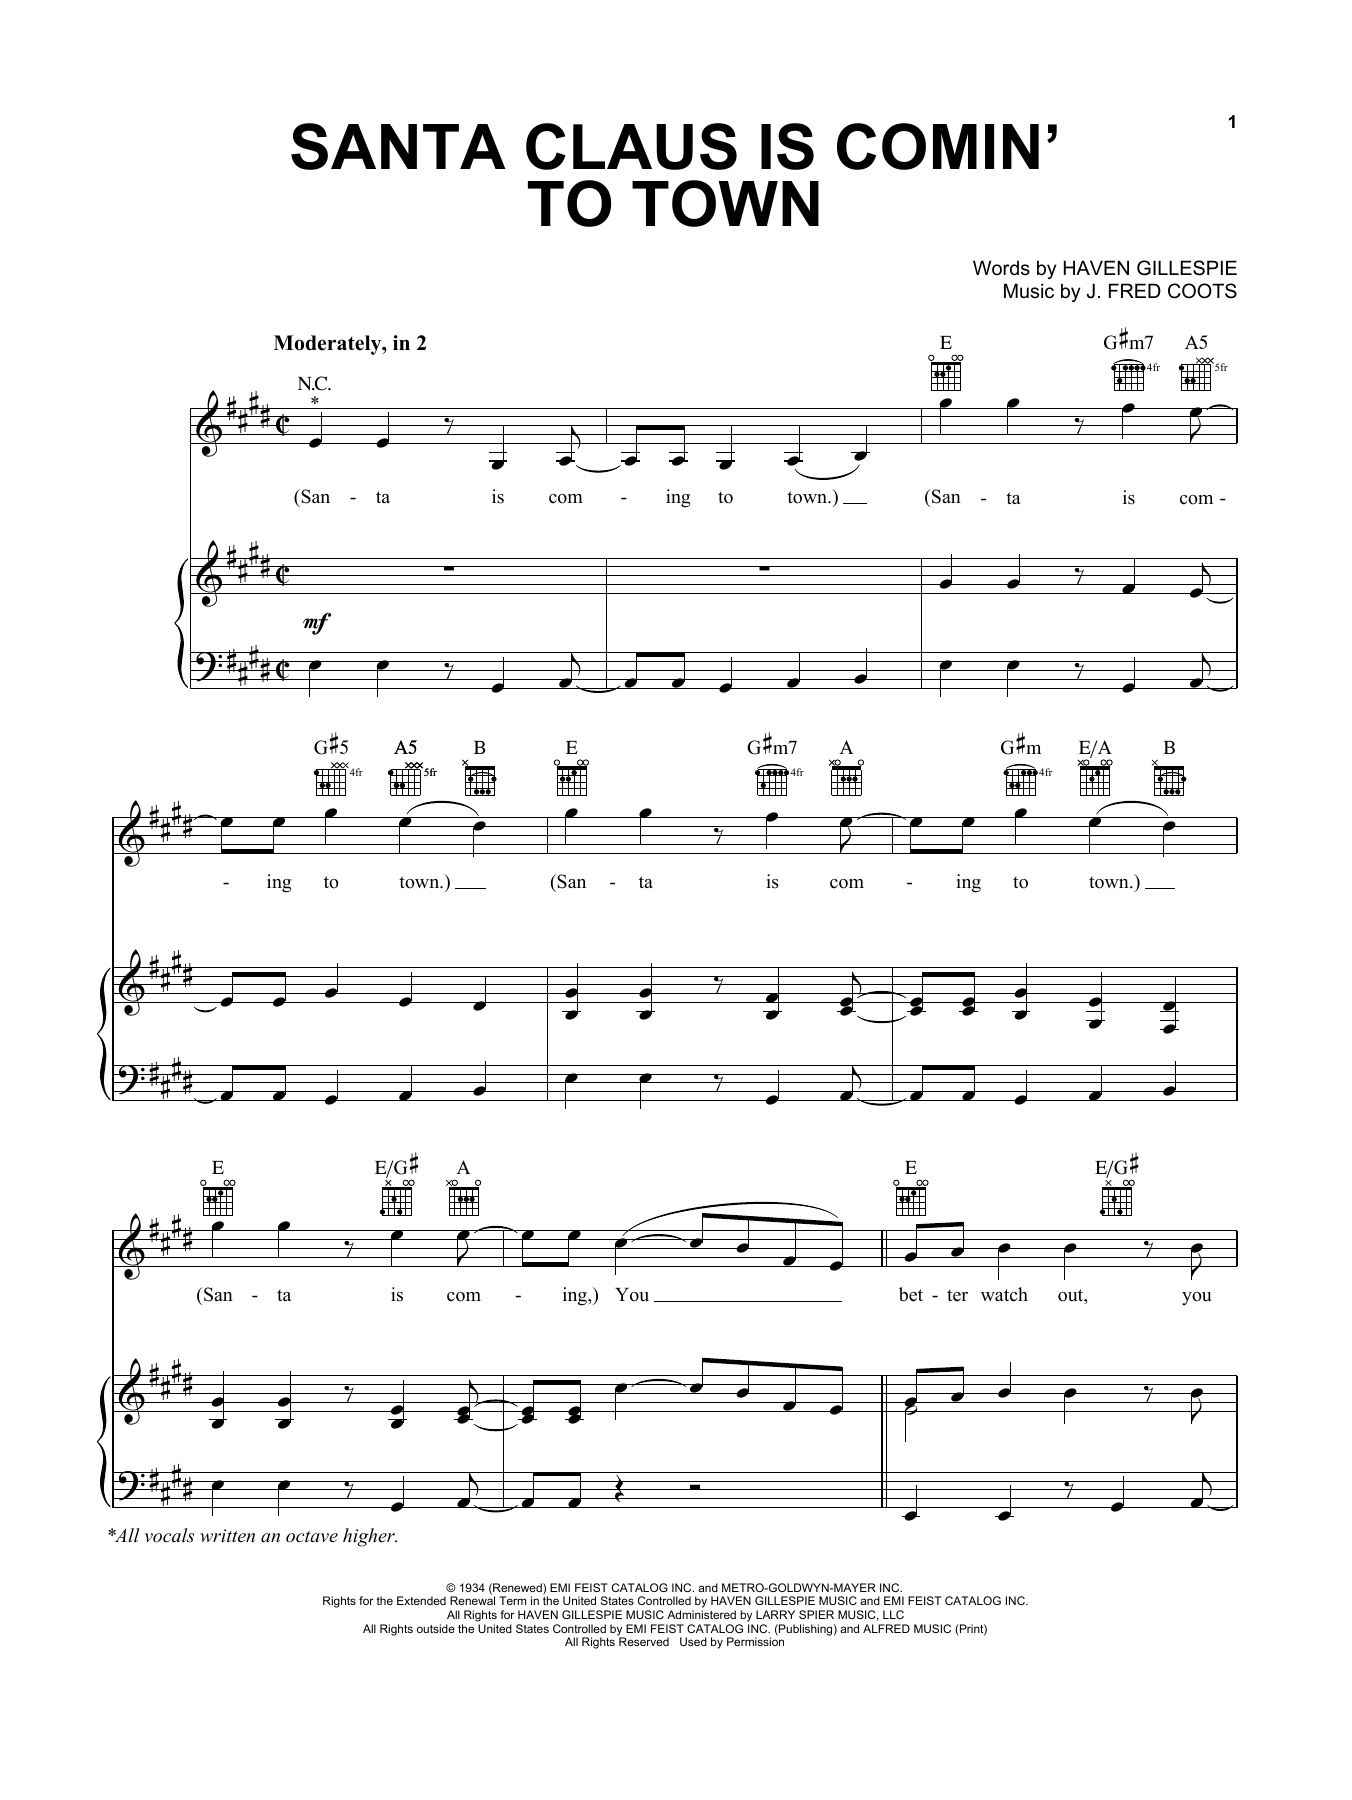 Santa Claus Is Comin' To Town sheet music